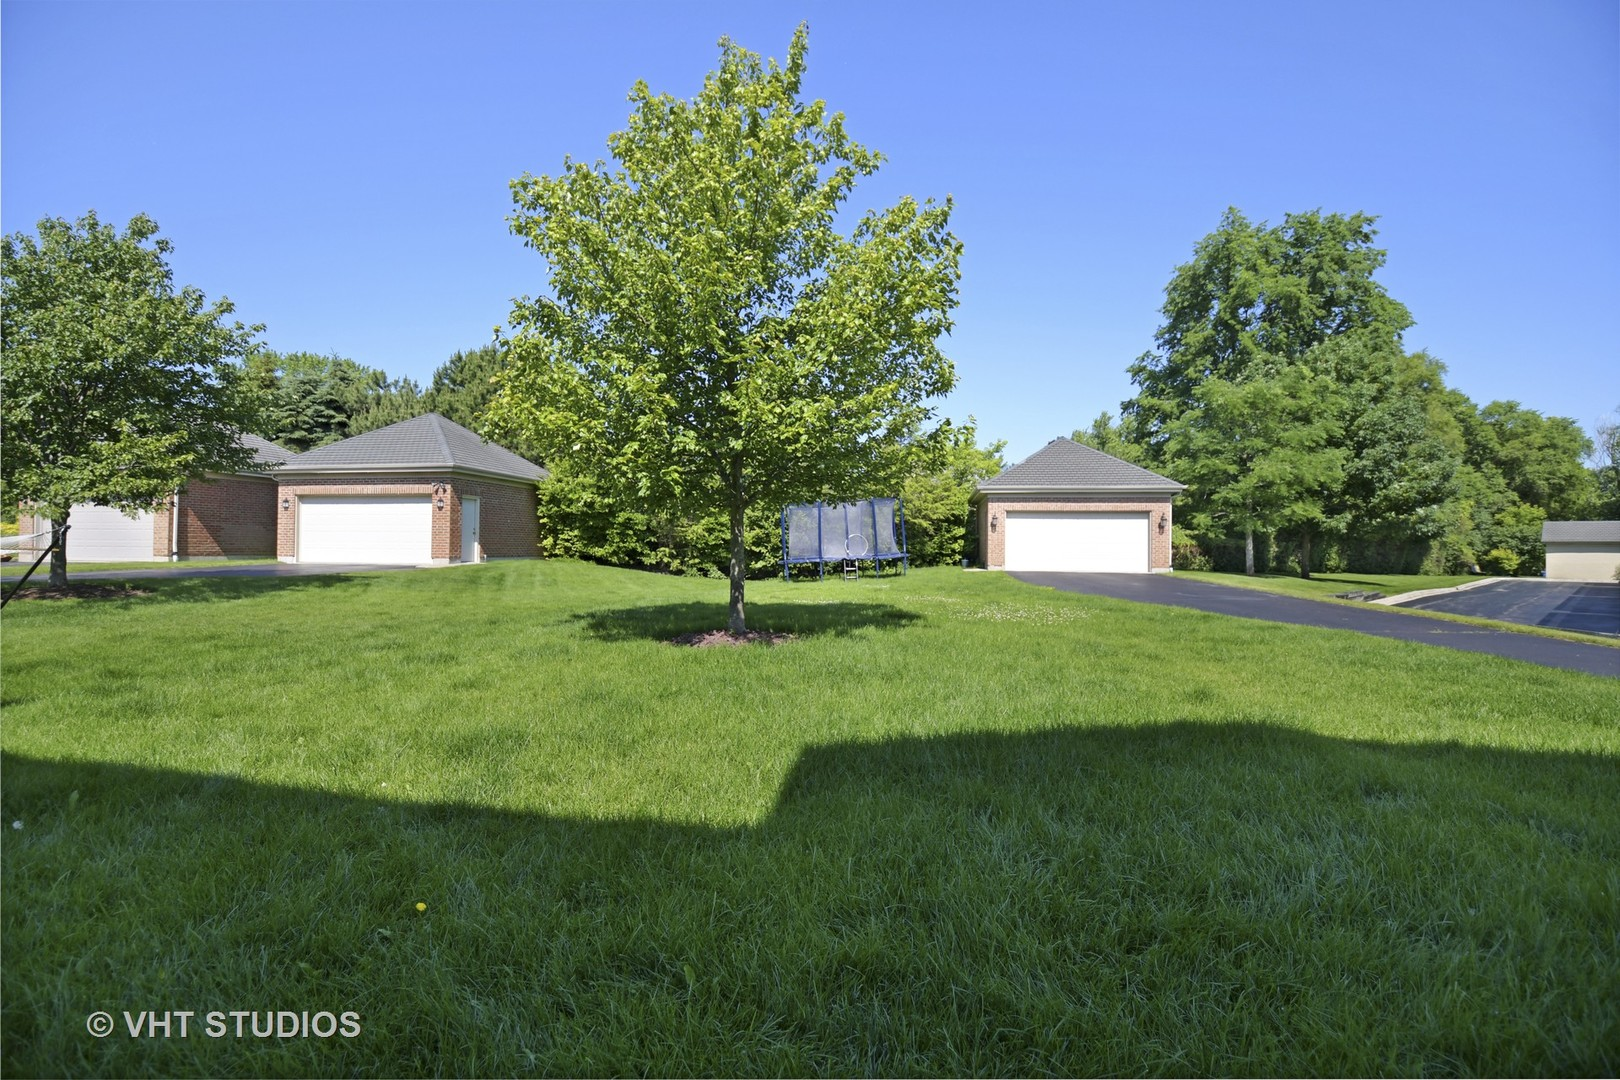 740 DeRoo, Highwood, Illinois, 60040